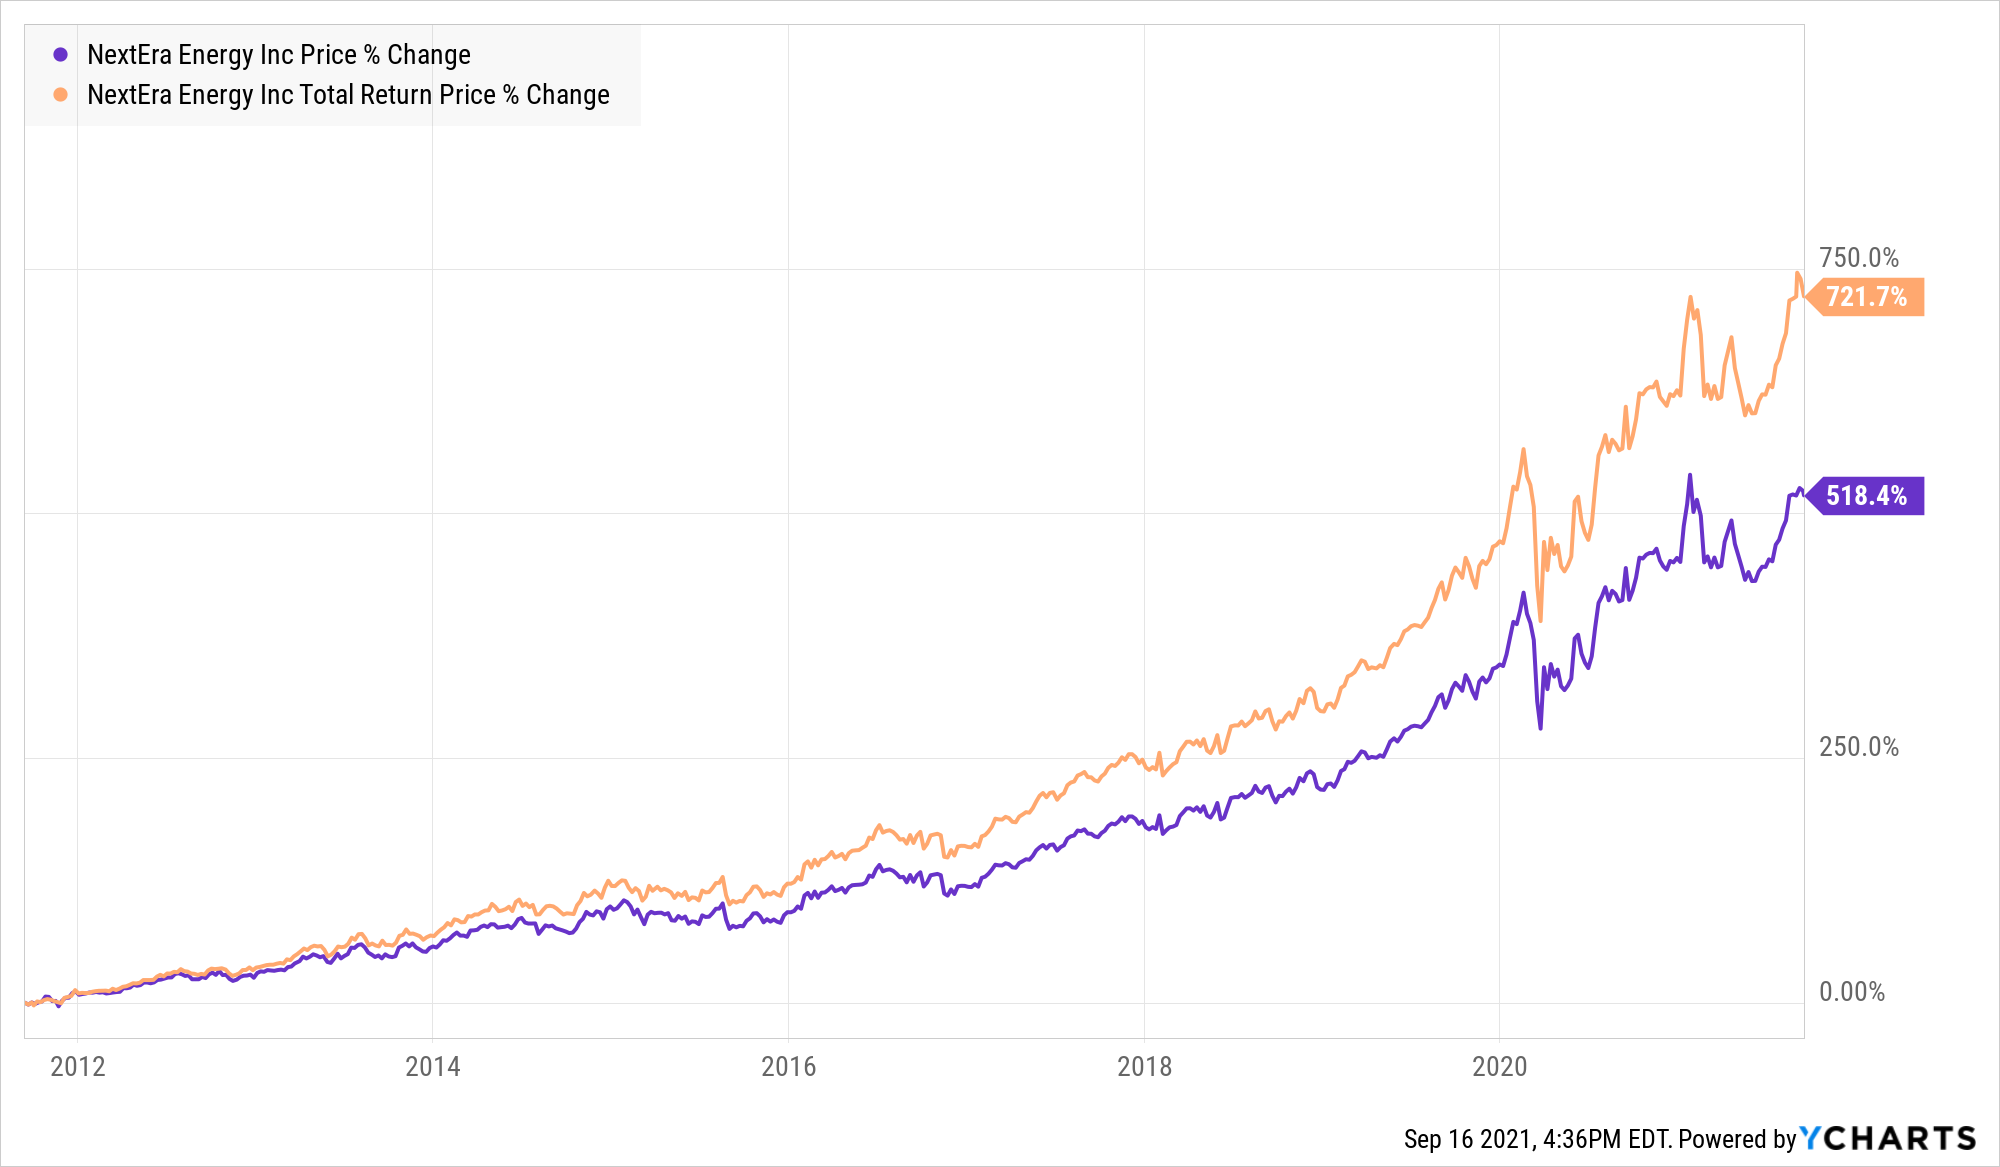 Chart showing upward trend in NextEra's price percent change and total return price.